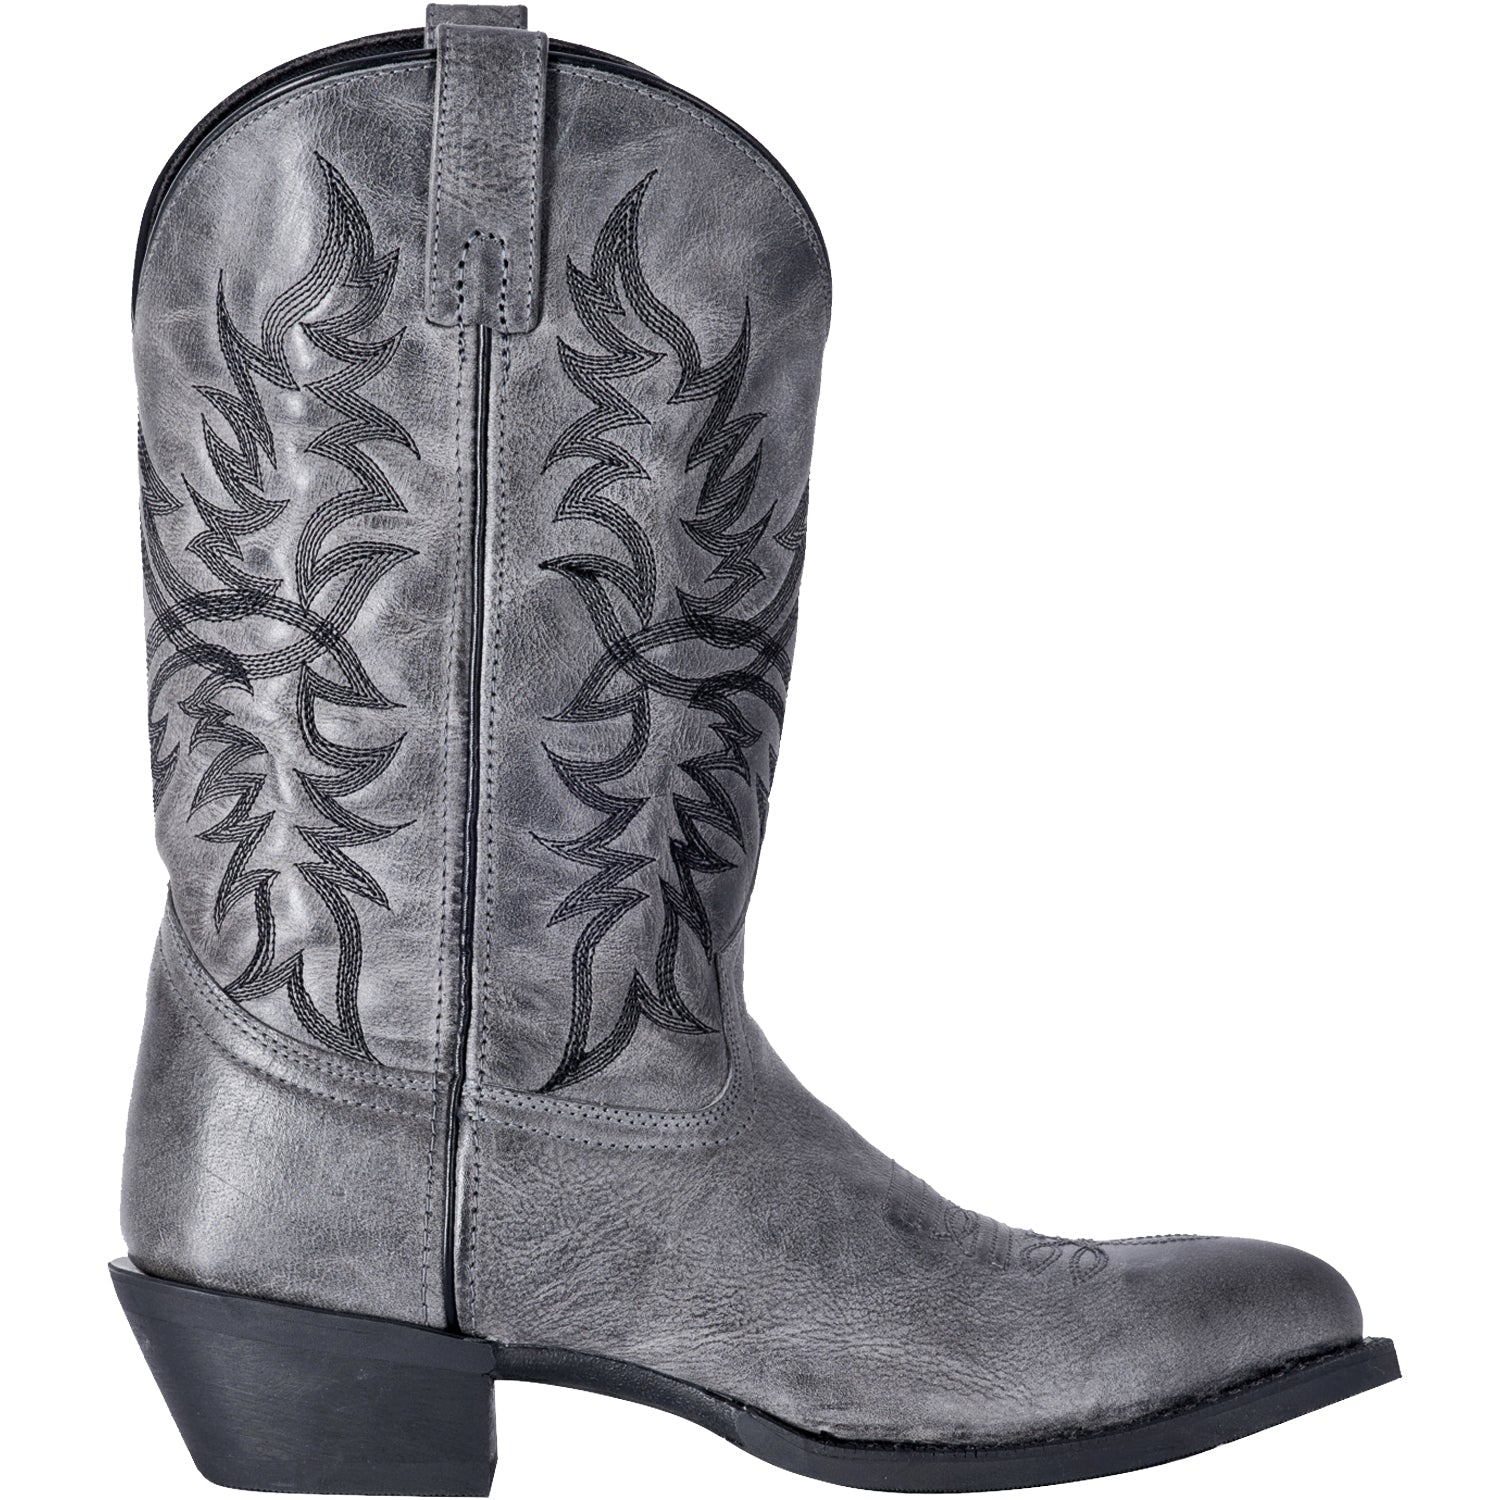 HARDING LEATHER BOOT 4196591599658